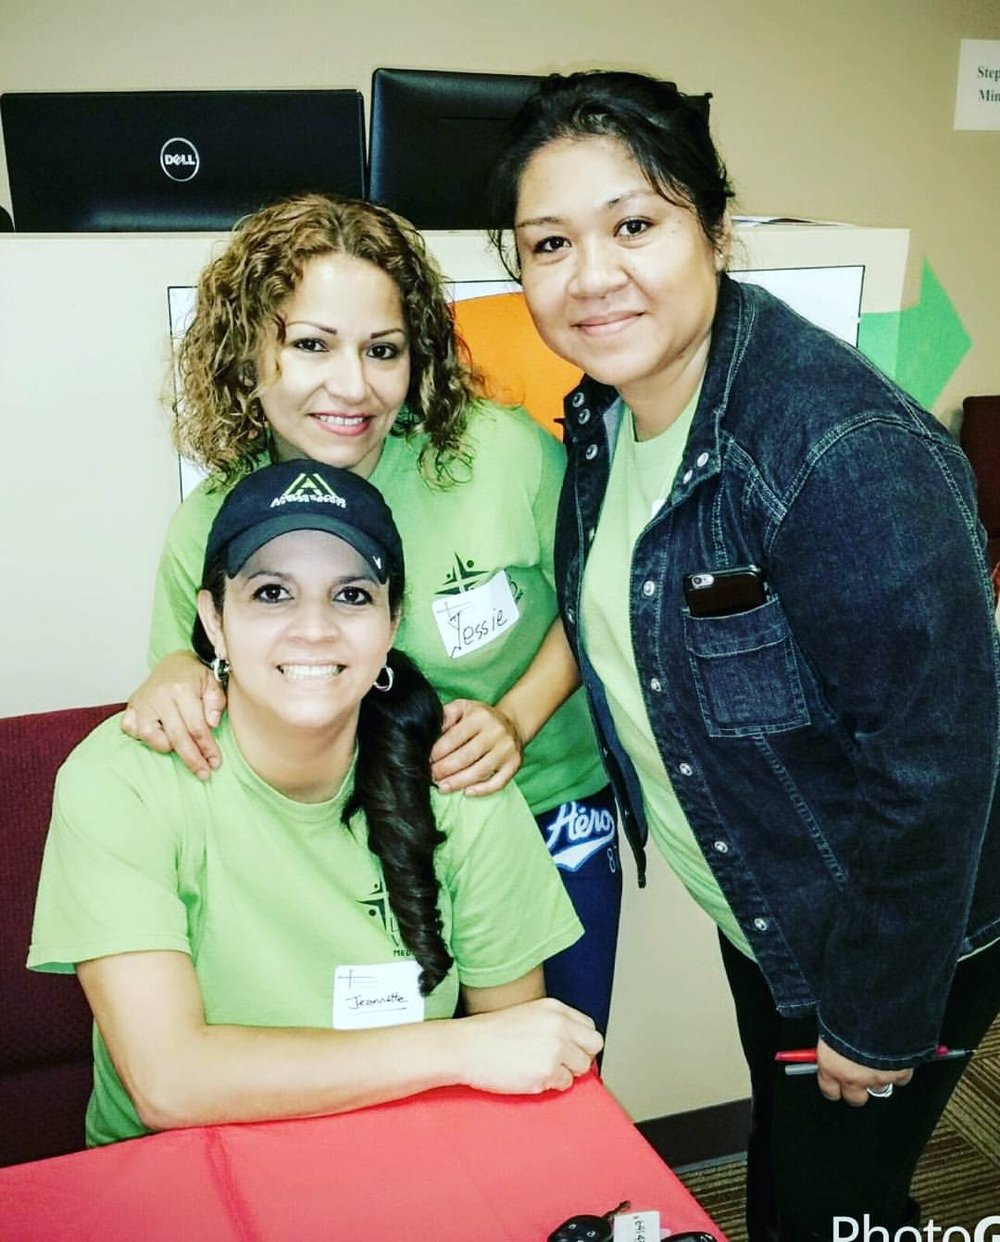 Our staff volunteering at a free local medical clinic